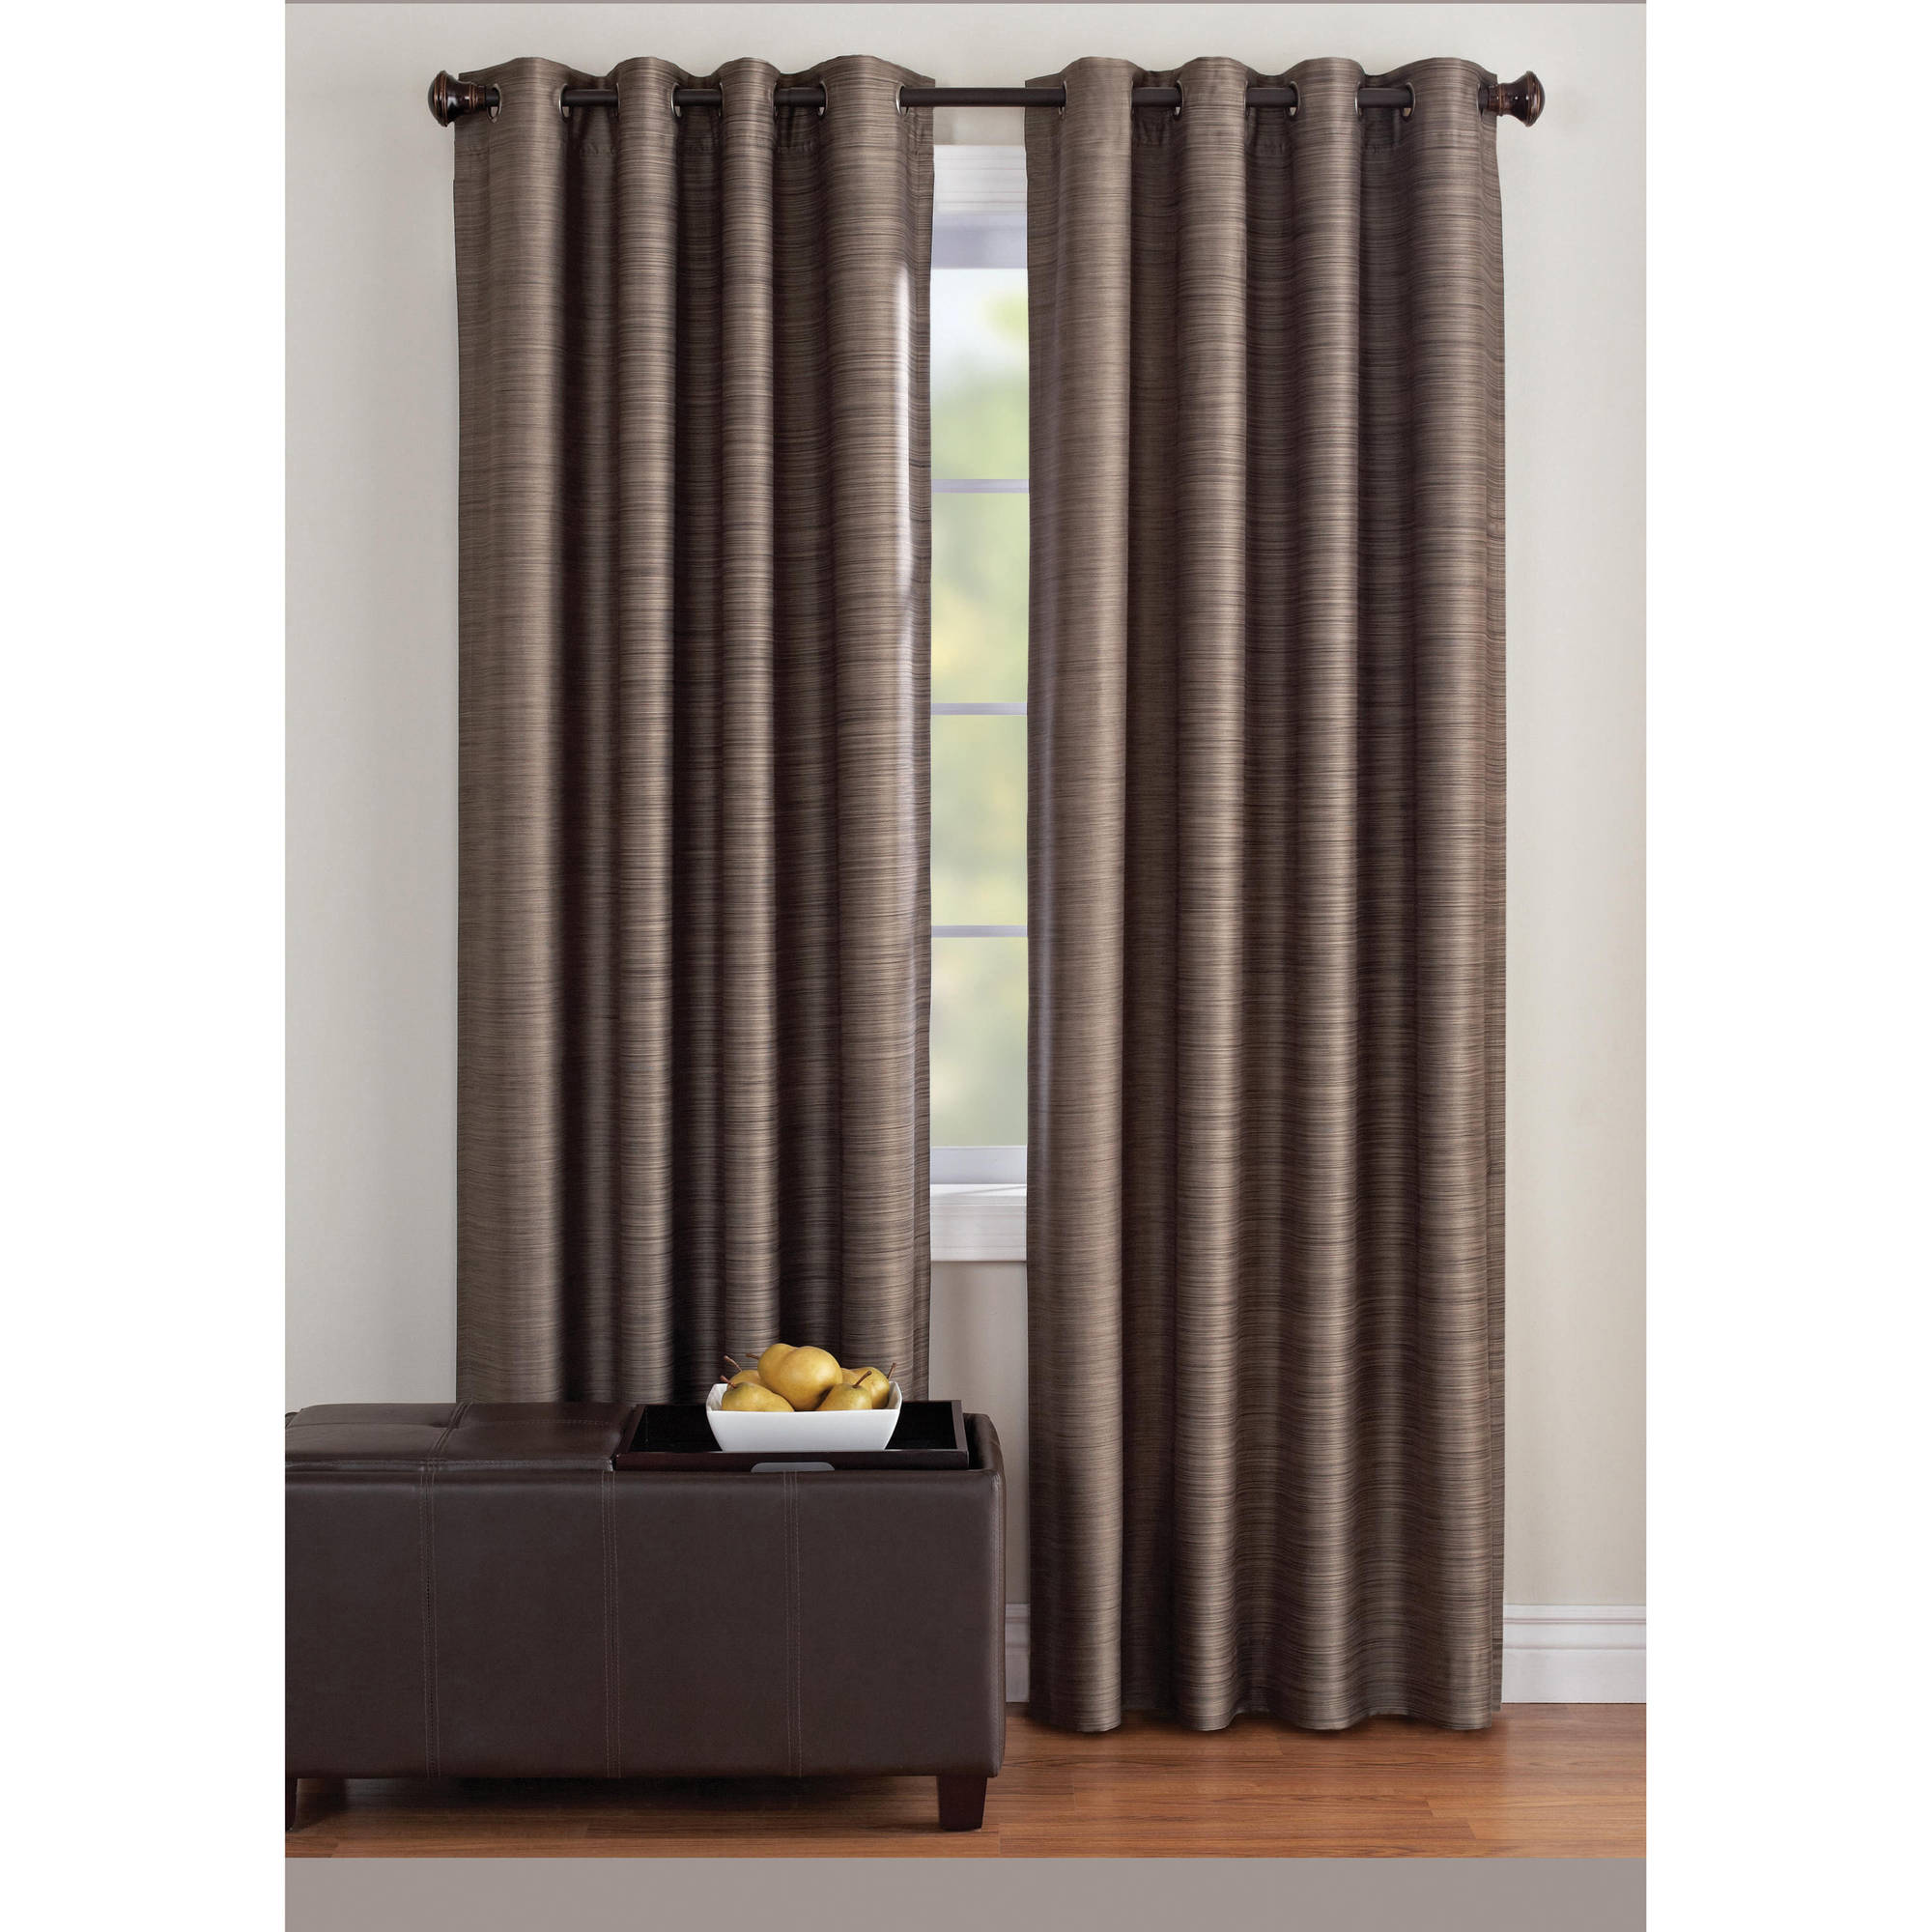 pleat twilight blackout striped thermal com pencil tyrone close navy curtains